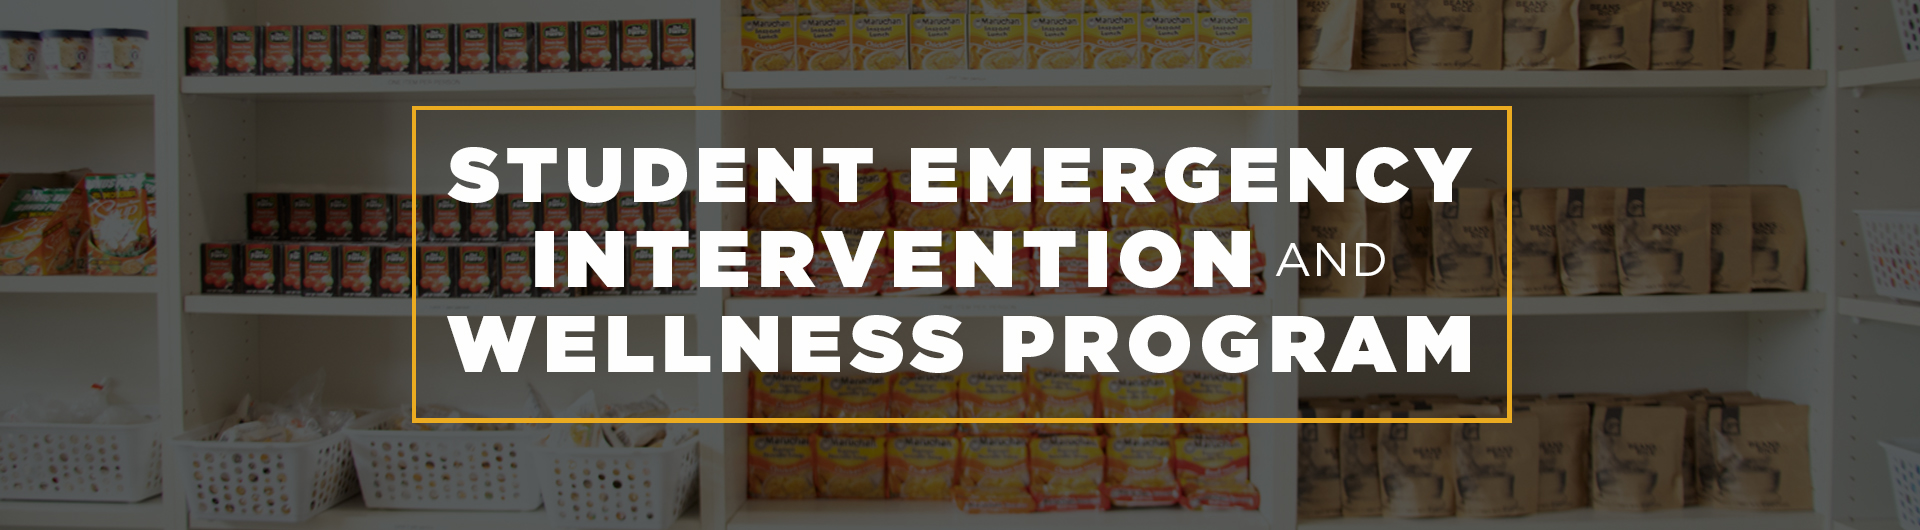 Student Emergency Intervention And Wellness Program Banner